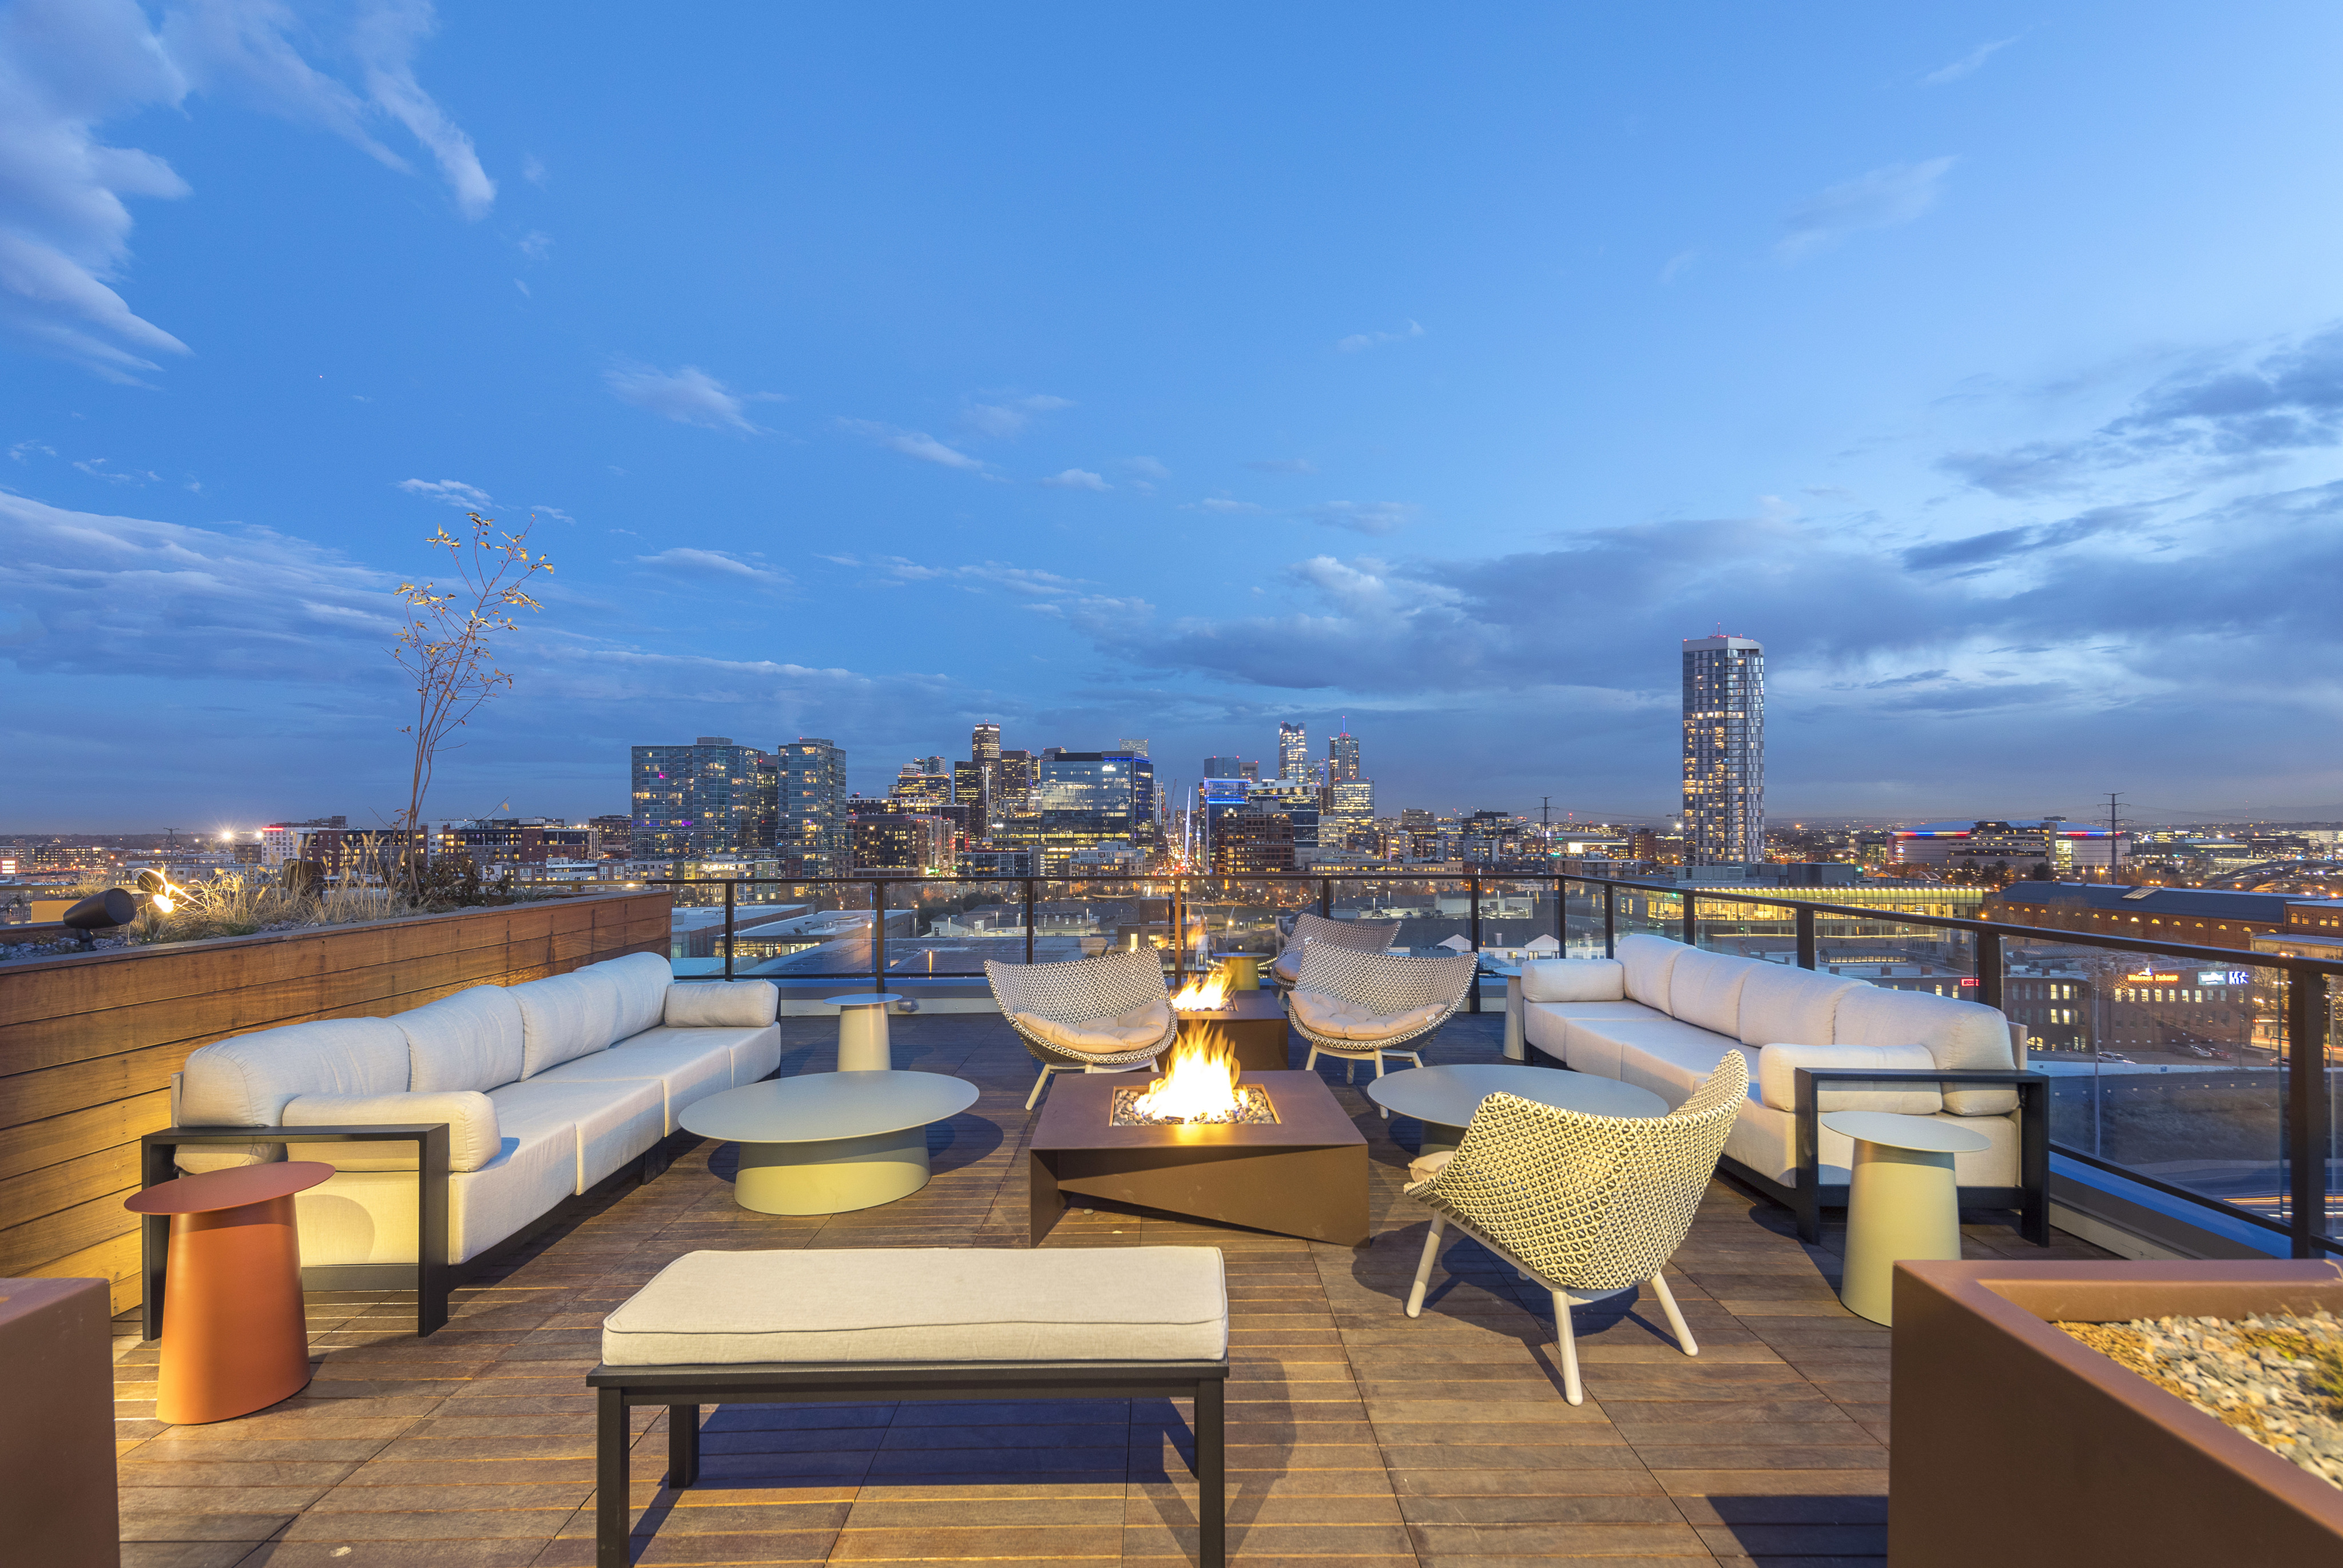 Private rooftop deck with lush landscaping, fire pits, outdoor tv, green space, and modern lounge seating to enjoy city and mountain views